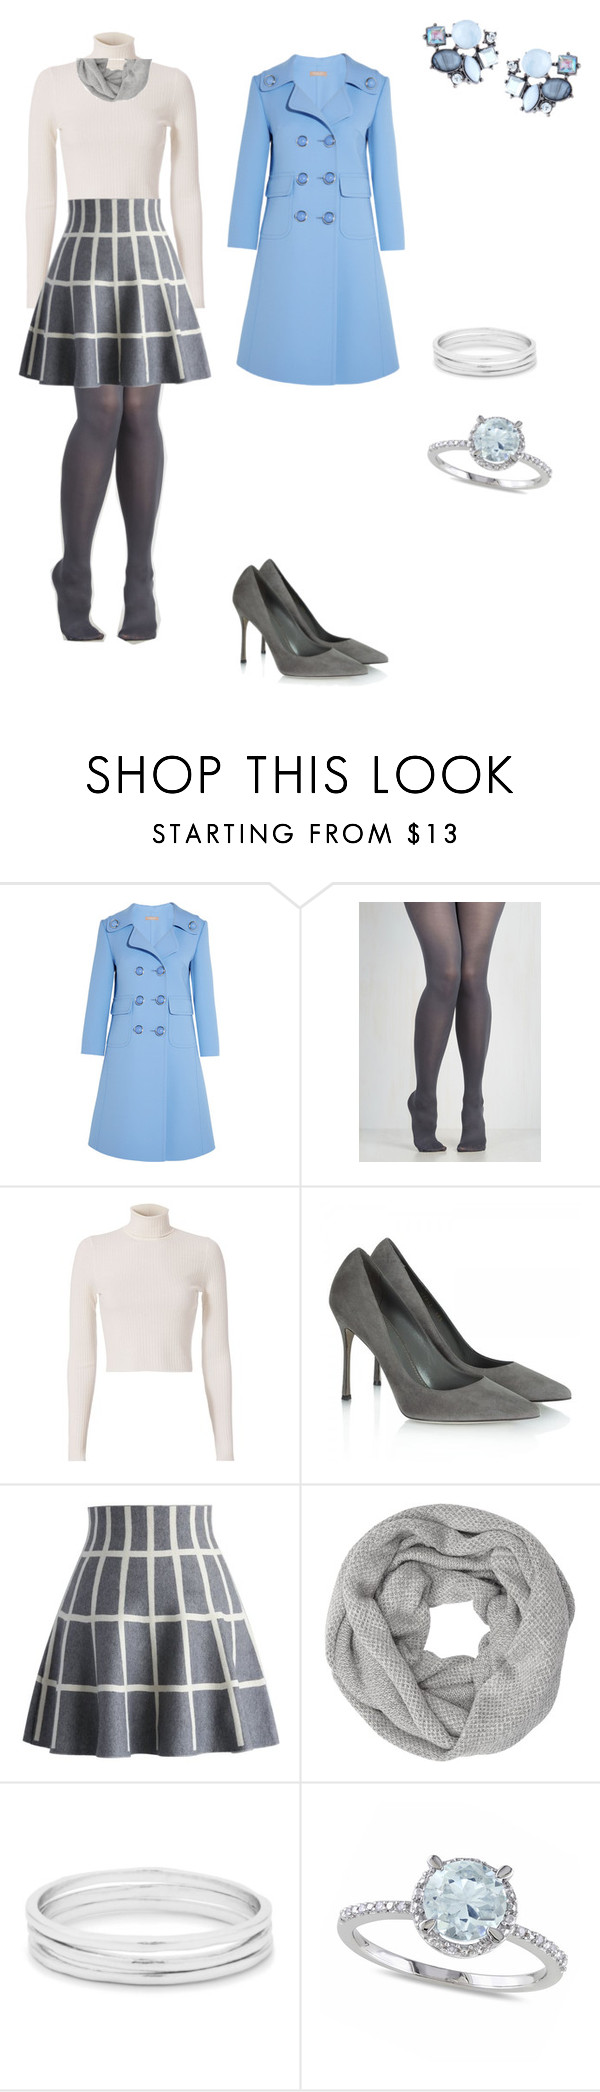 """""""Untitled #65"""" by paty8797 ❤ liked on Polyvore featuring Michael Kors, A.L.C., Sergio Rossi, Chicwish, John Lewis, Gorjana, Allurez and Lydell NYC"""